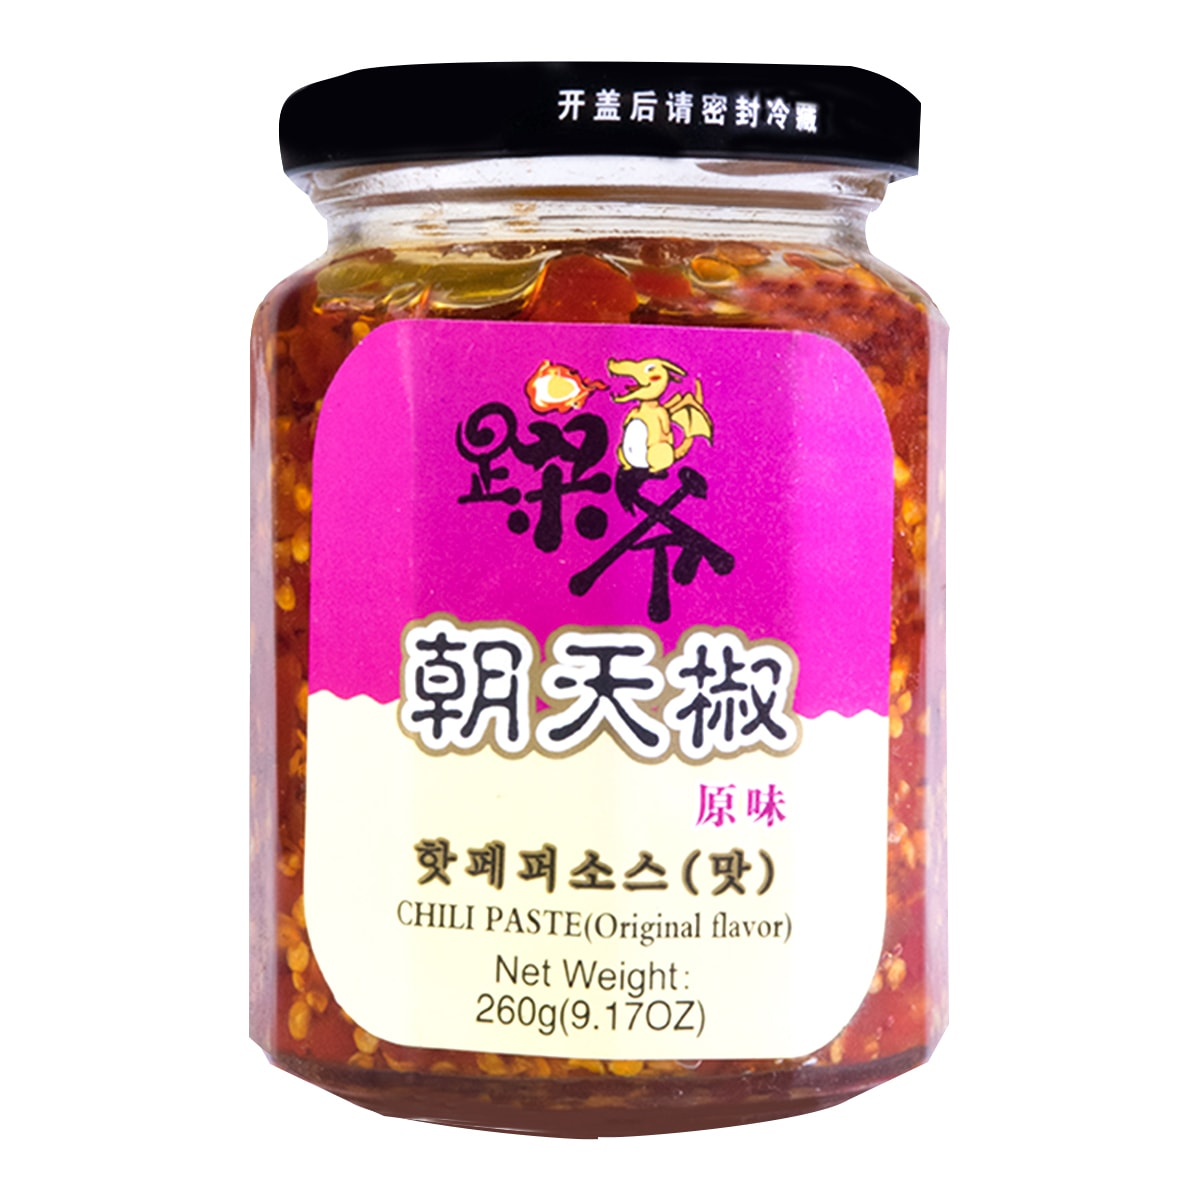 SAOYE Spicy Chili Hot Sauce Original Flavor 260g